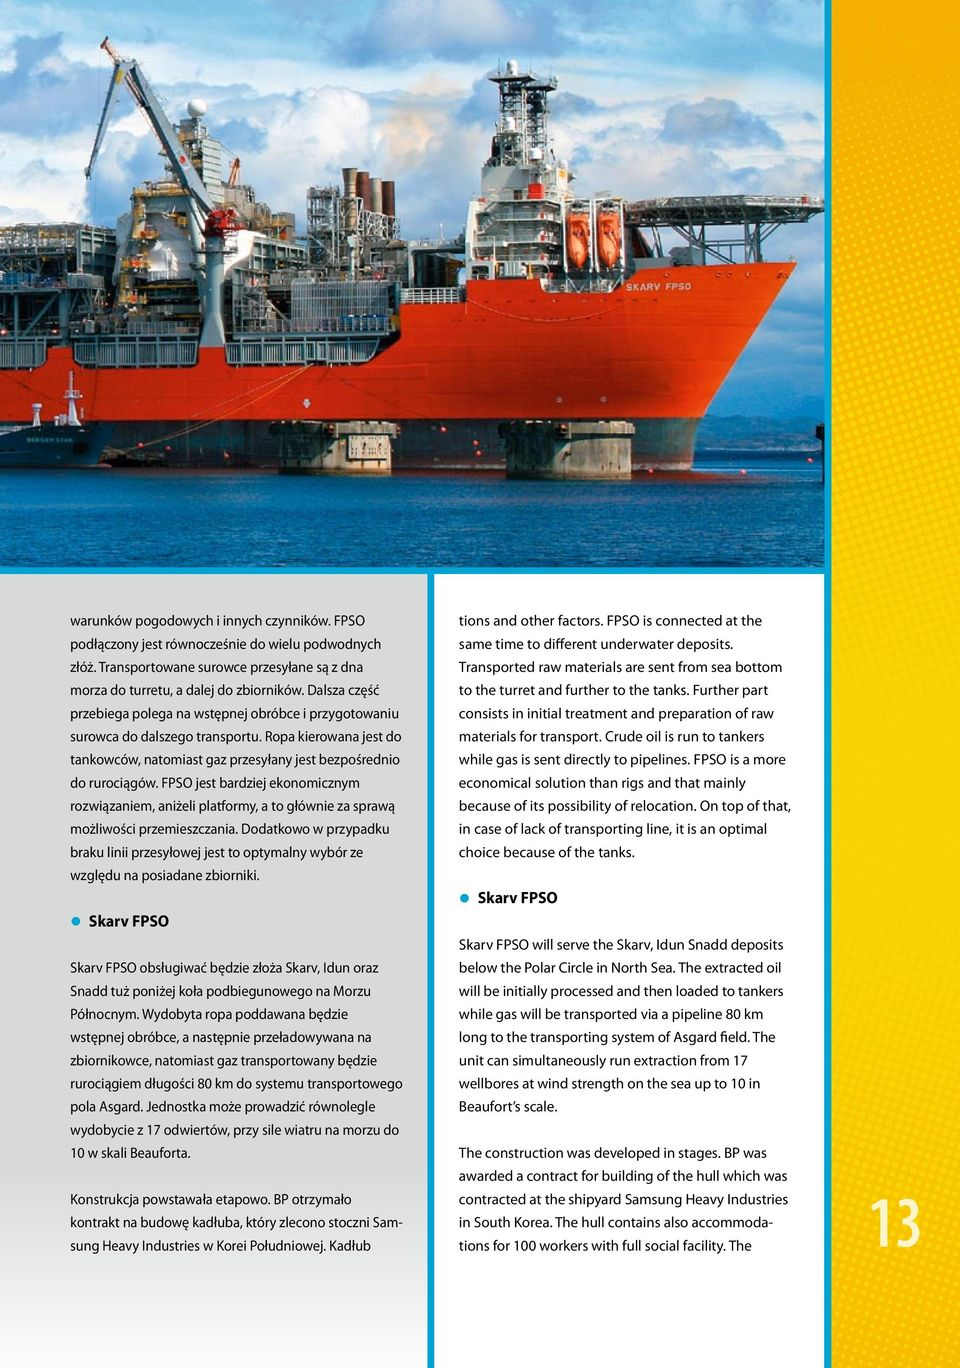 _fpso_is_a more_ economical_solution_than_rigs_and_that_mainly_ because_of_its_possibility_of_relocation.